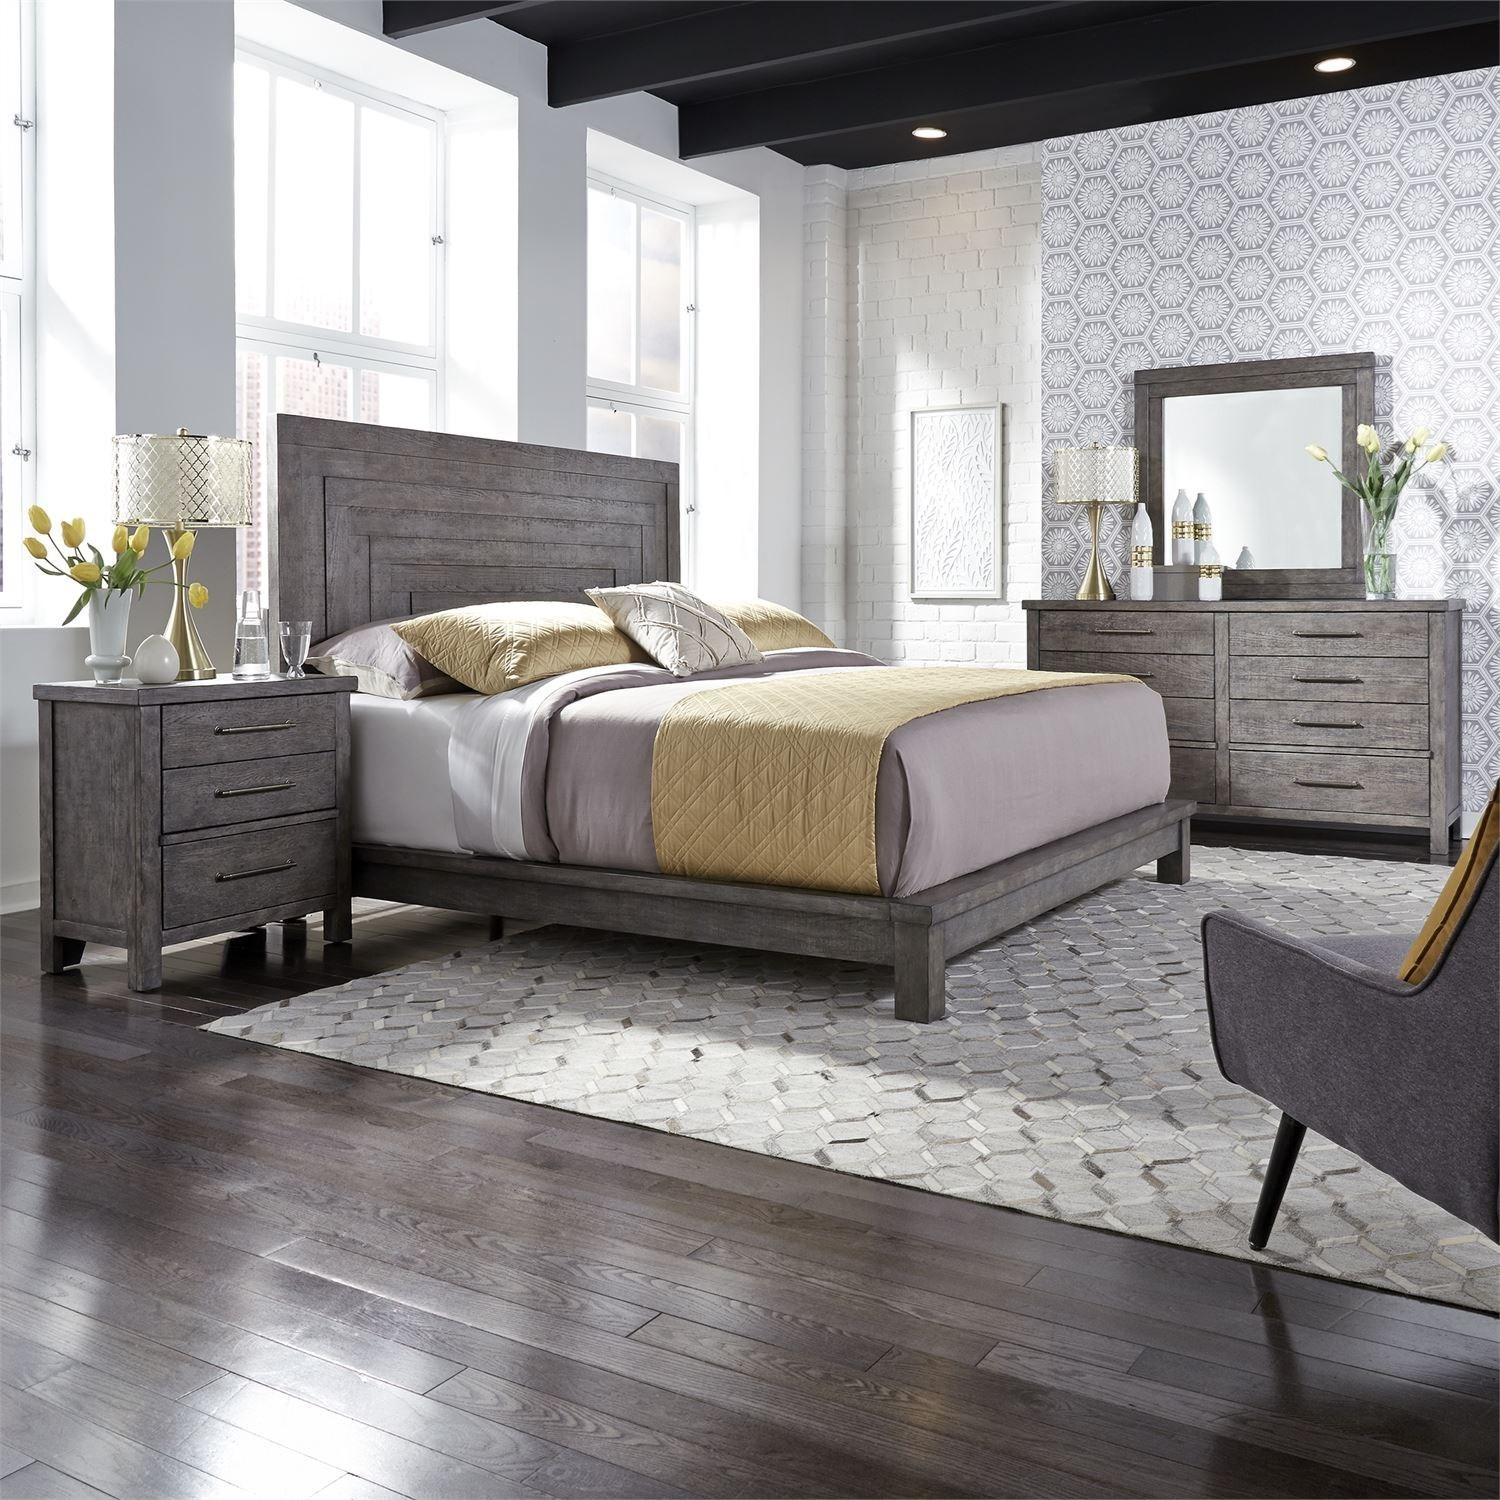 Modern Farmhouse King Bedroom Group by Liberty Furniture at Northeast Factory Direct